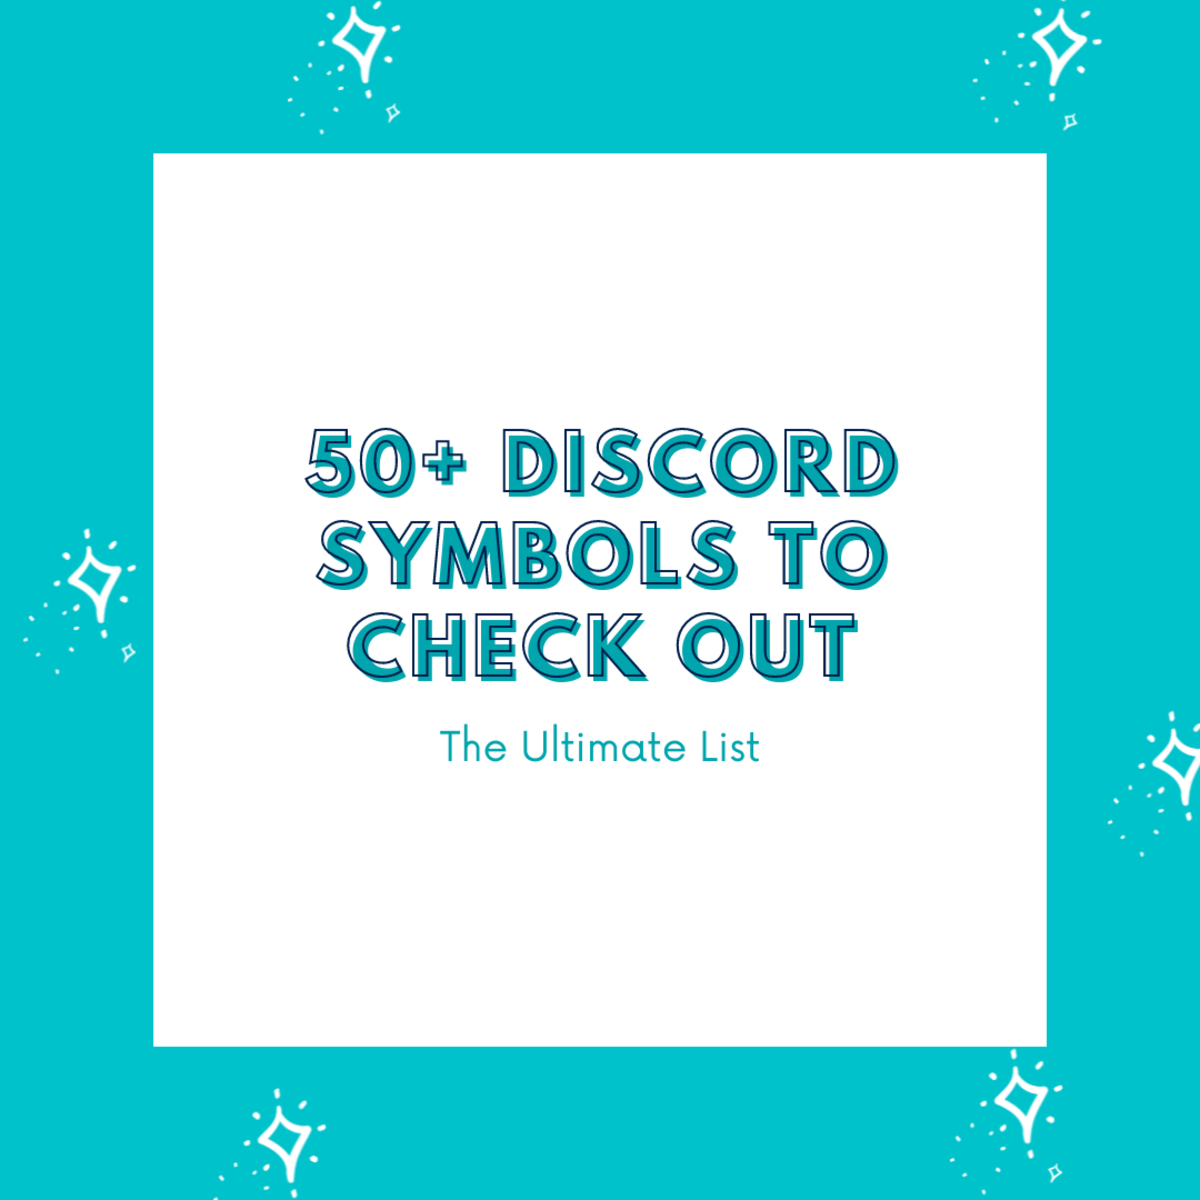 In this guide, discover over 50 Discord symbols and text emoticons to try out!